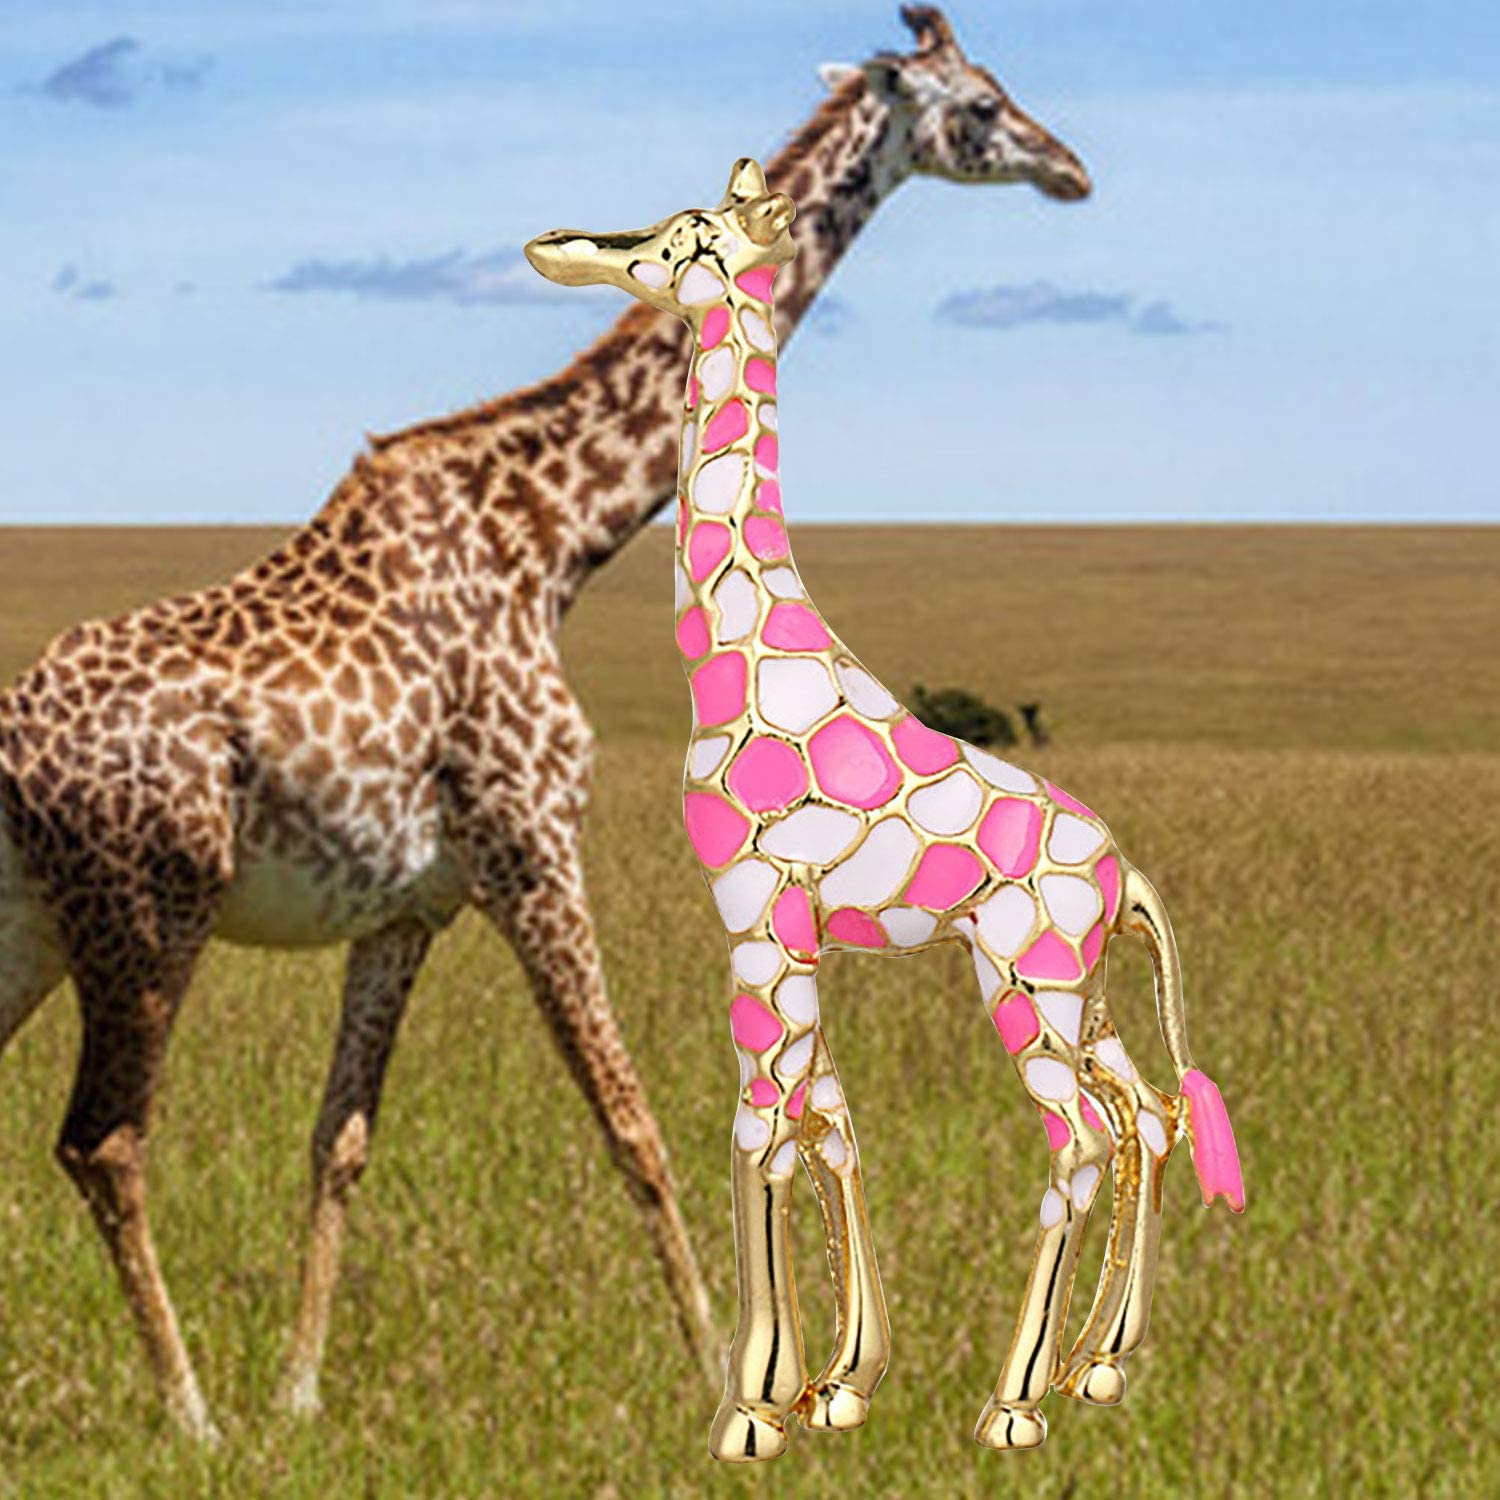 bobauna Colorful Enameled Giraffe Animal Brooch Pin Clothes Decoration Jewelry Gift for Women Girls